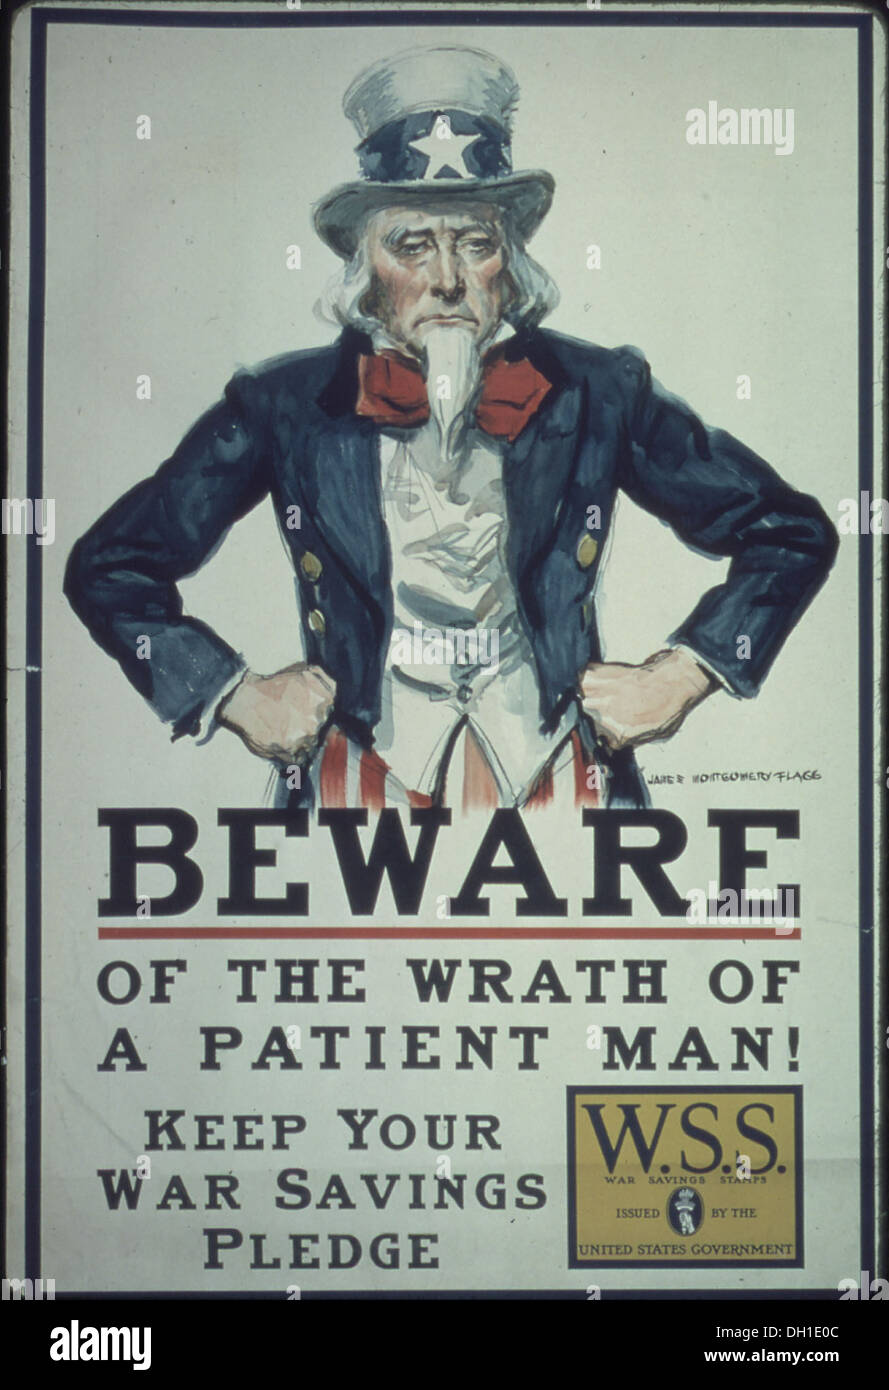 Beware of the wrath of a patient man5E Keep your War Saving Pledge. W.S.S. War Saving Stamps issued by the United... 512649 - Stock Image